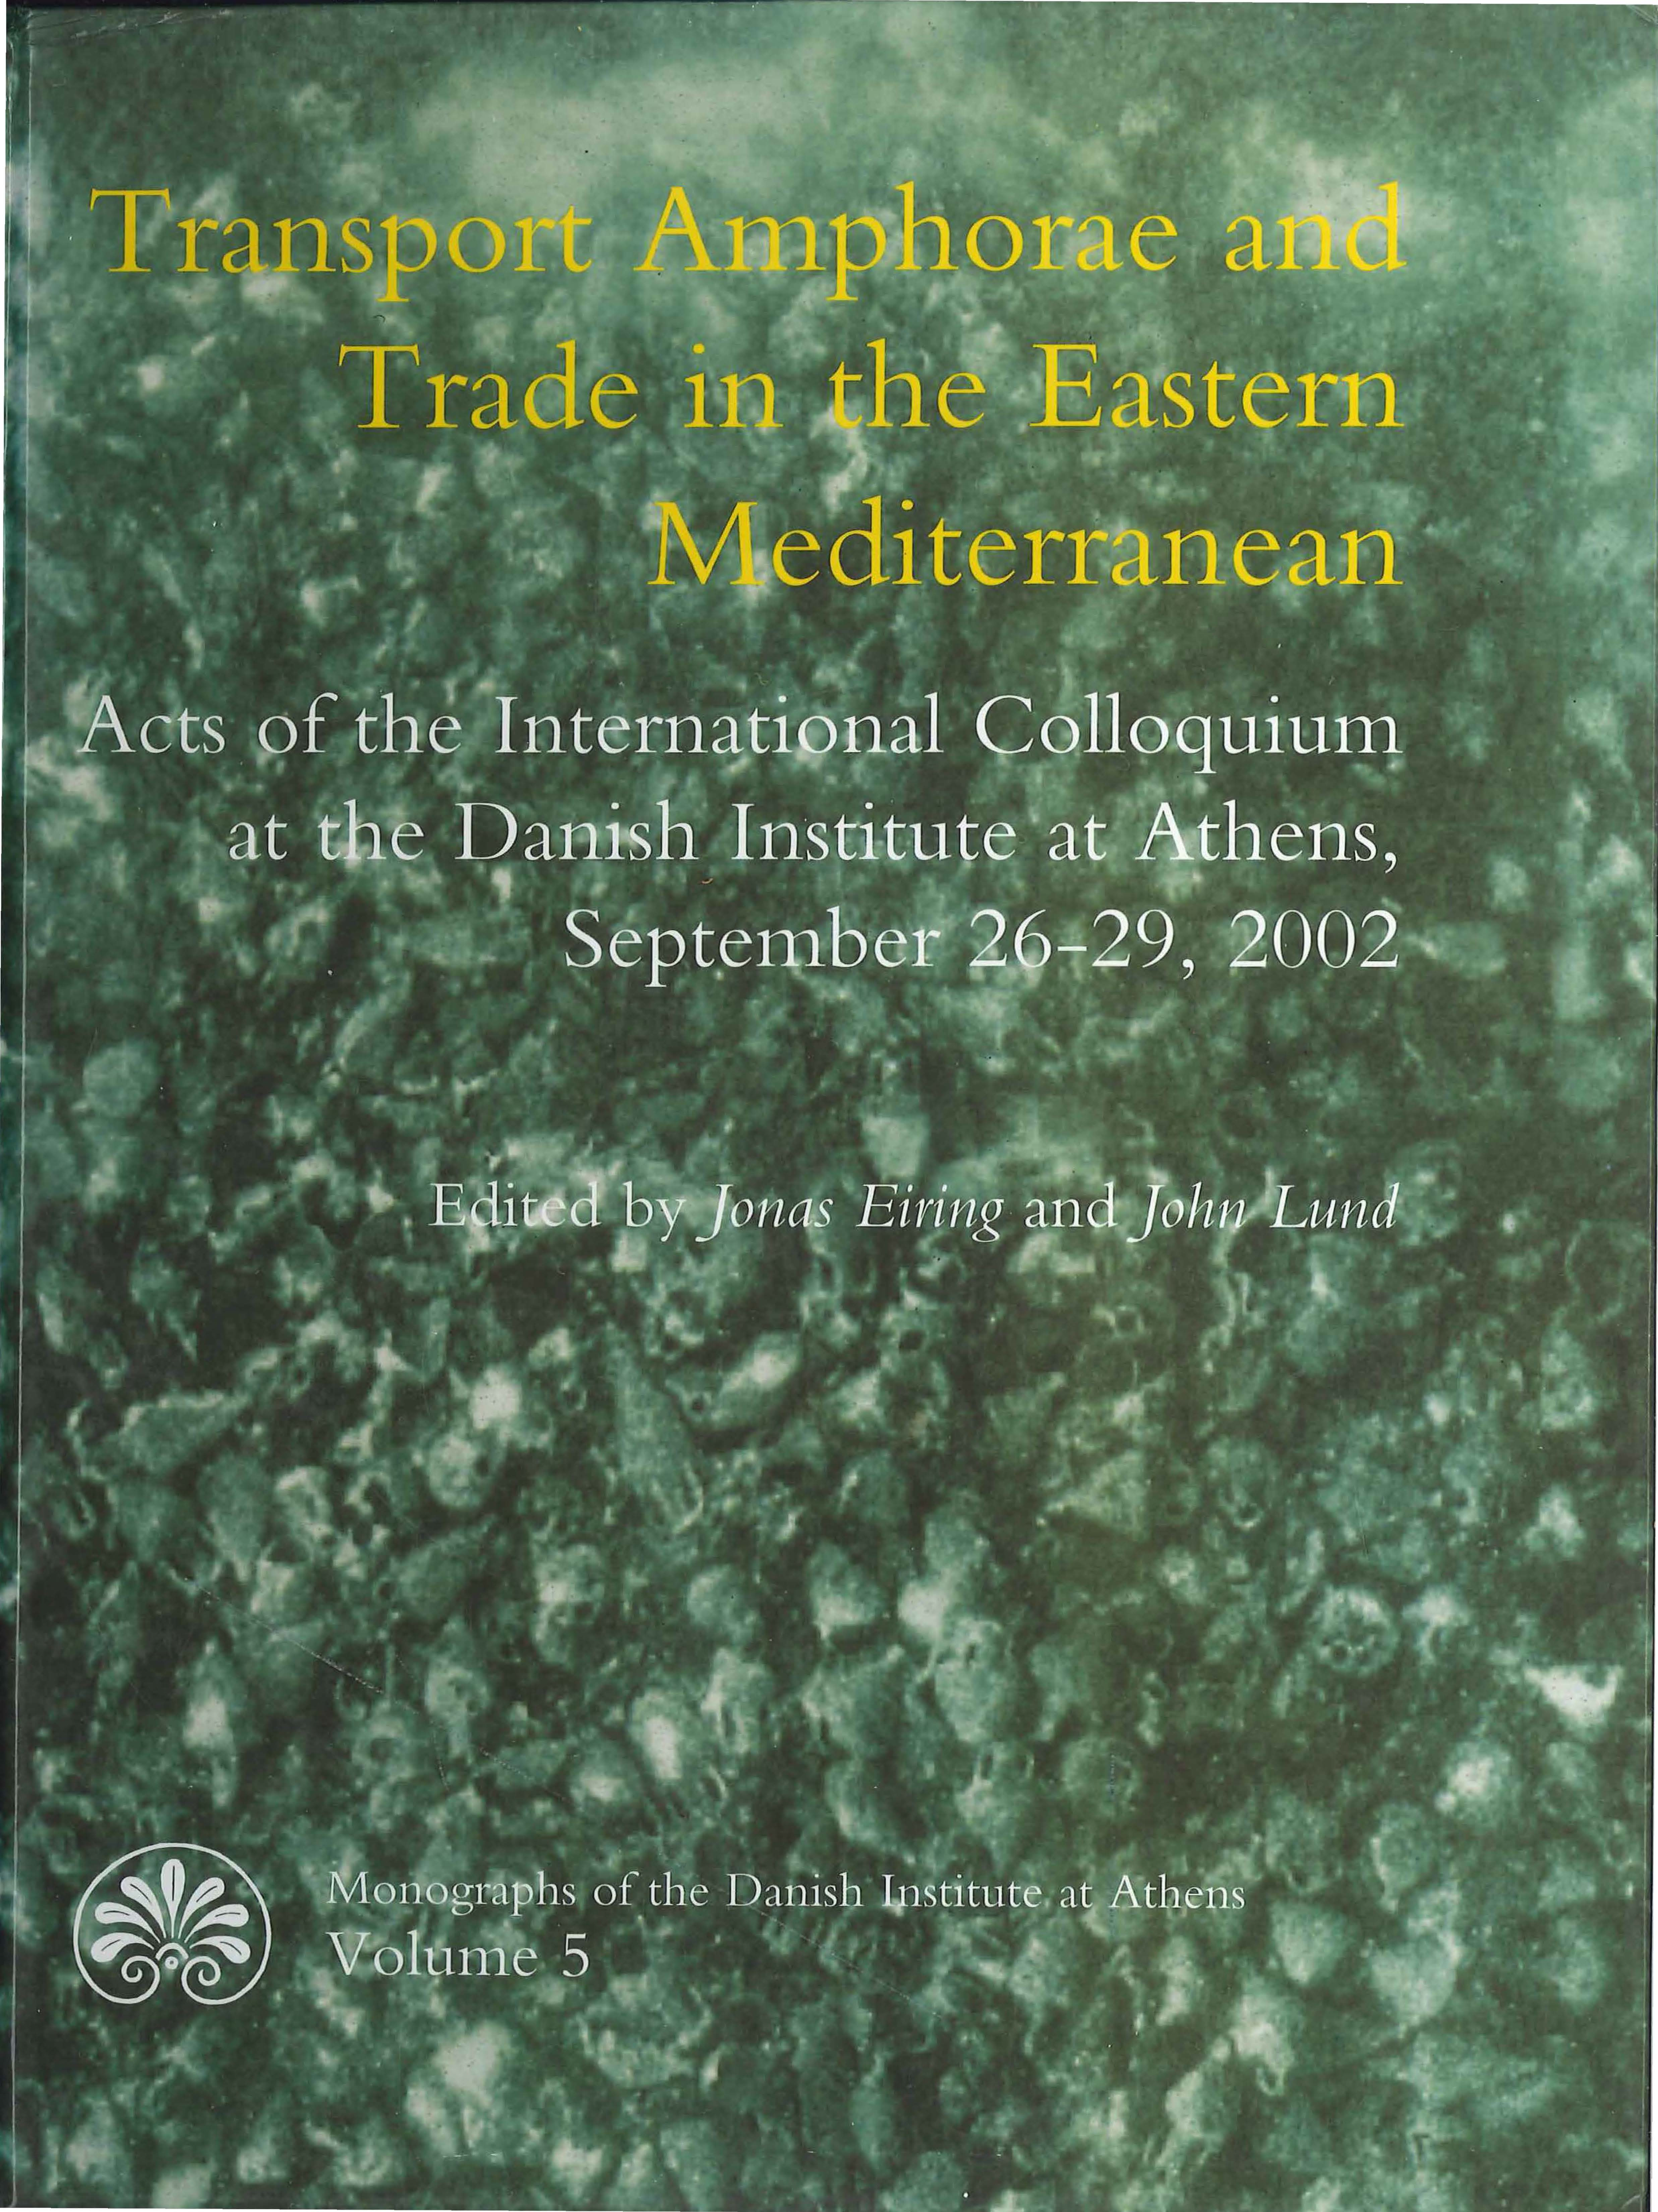 View Vol. 5 (2004): Transport Amphorae and Trade in the Eastern Mediterranean